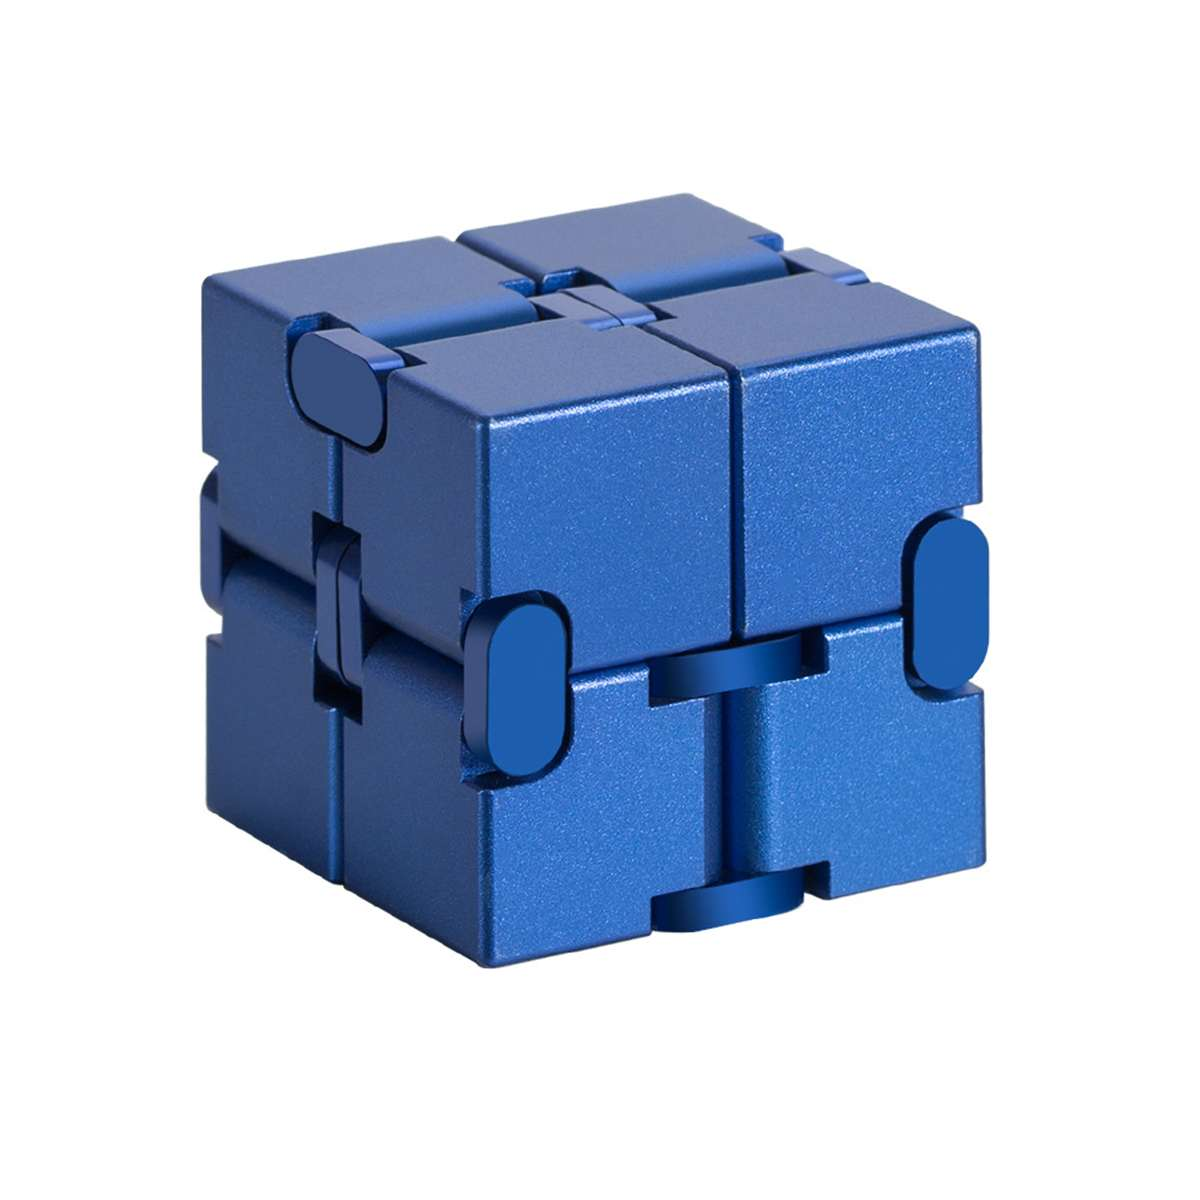 Relax Toy Infinit Cube Magic-Cube Stress Adults Relief-Blocks Finger-Anxiety Mini img1